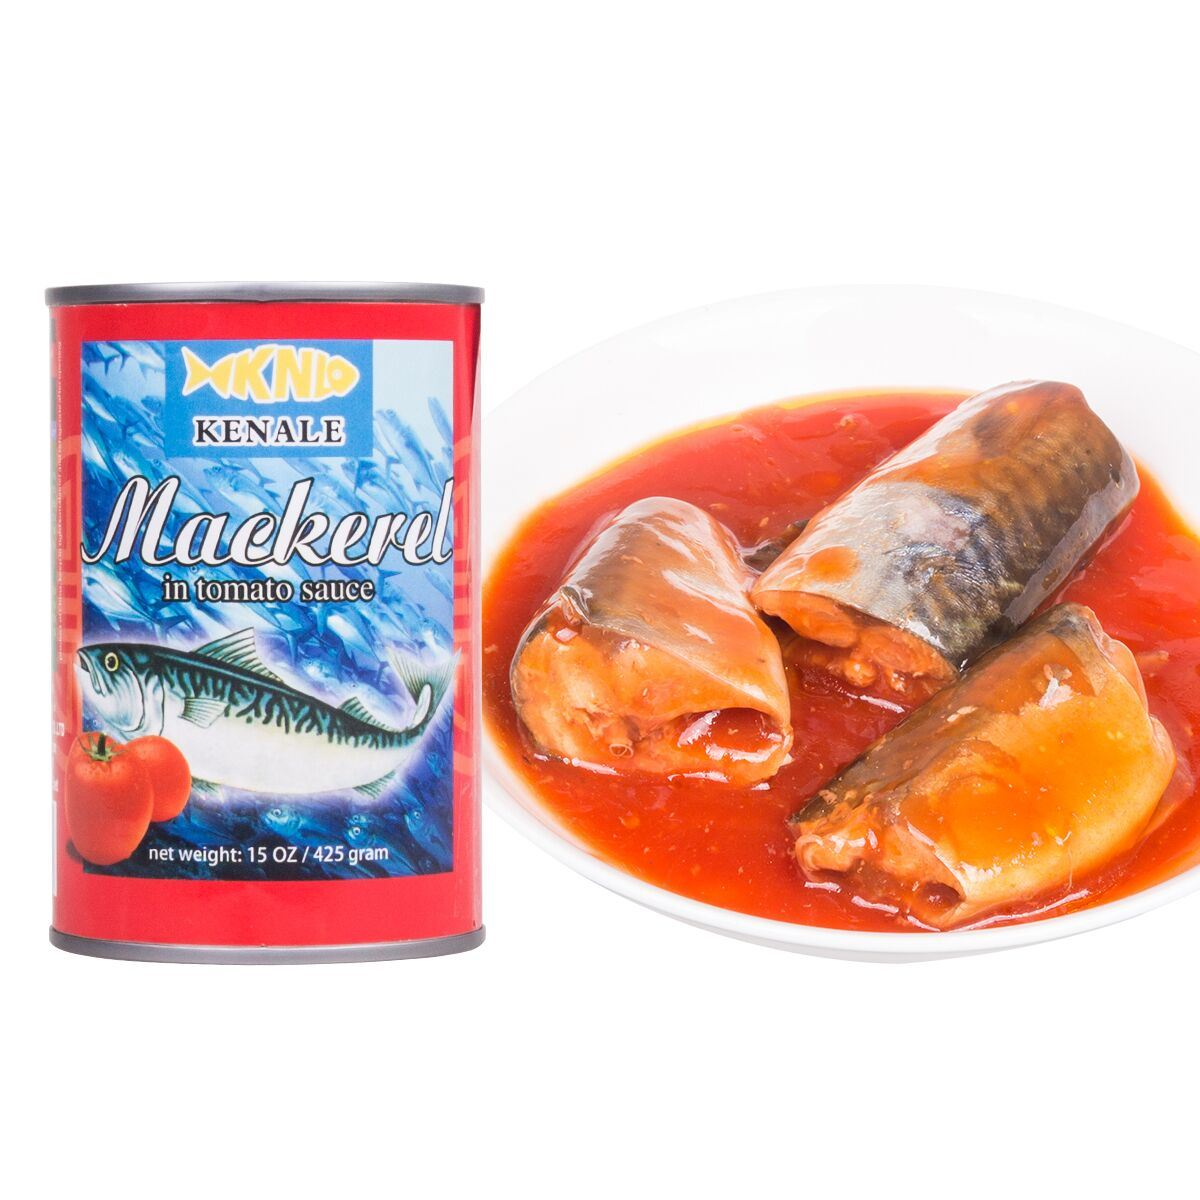 bl china canned seafood - 1000×1000